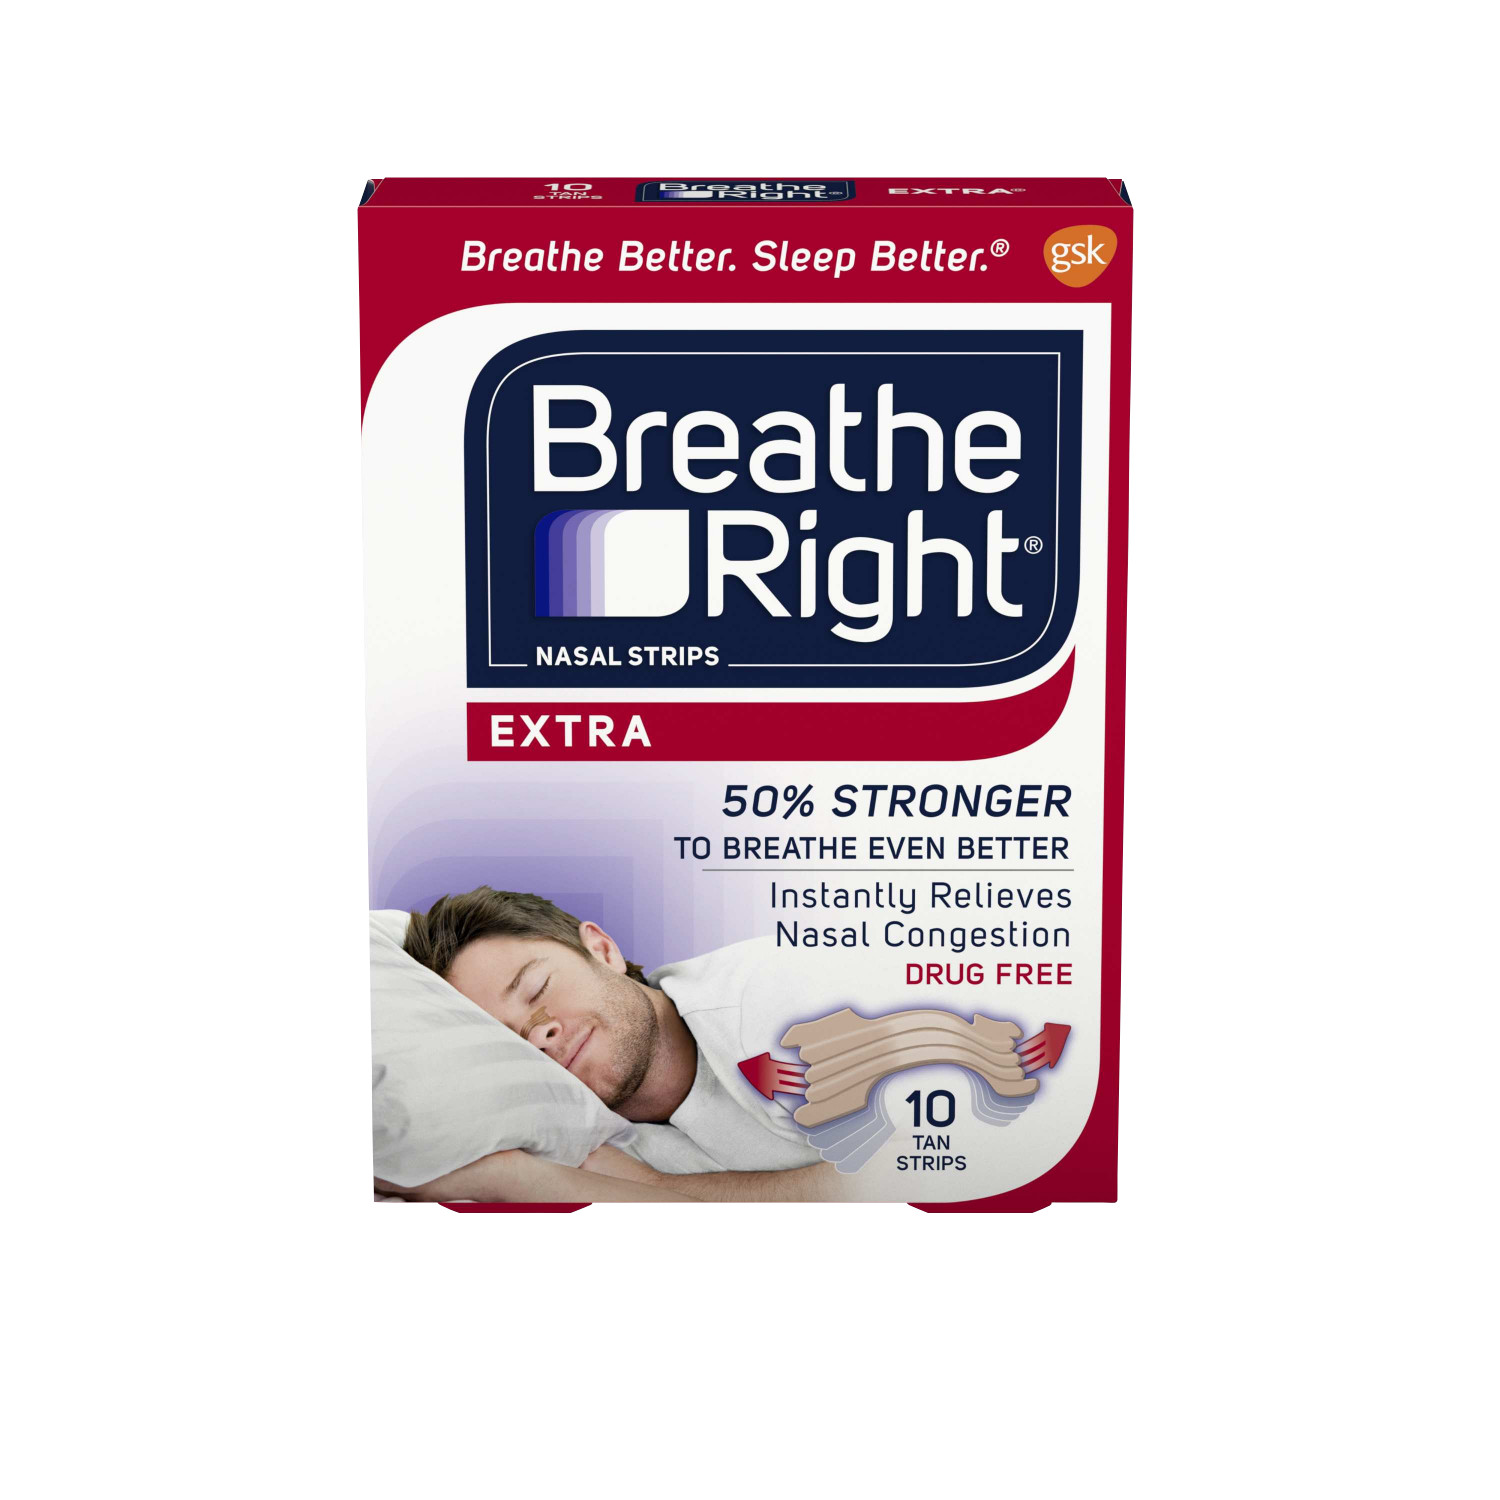 Breathe Right Extra Tan Drug-Free Nasal Strips for Nasal Congestion Relief, 10 count